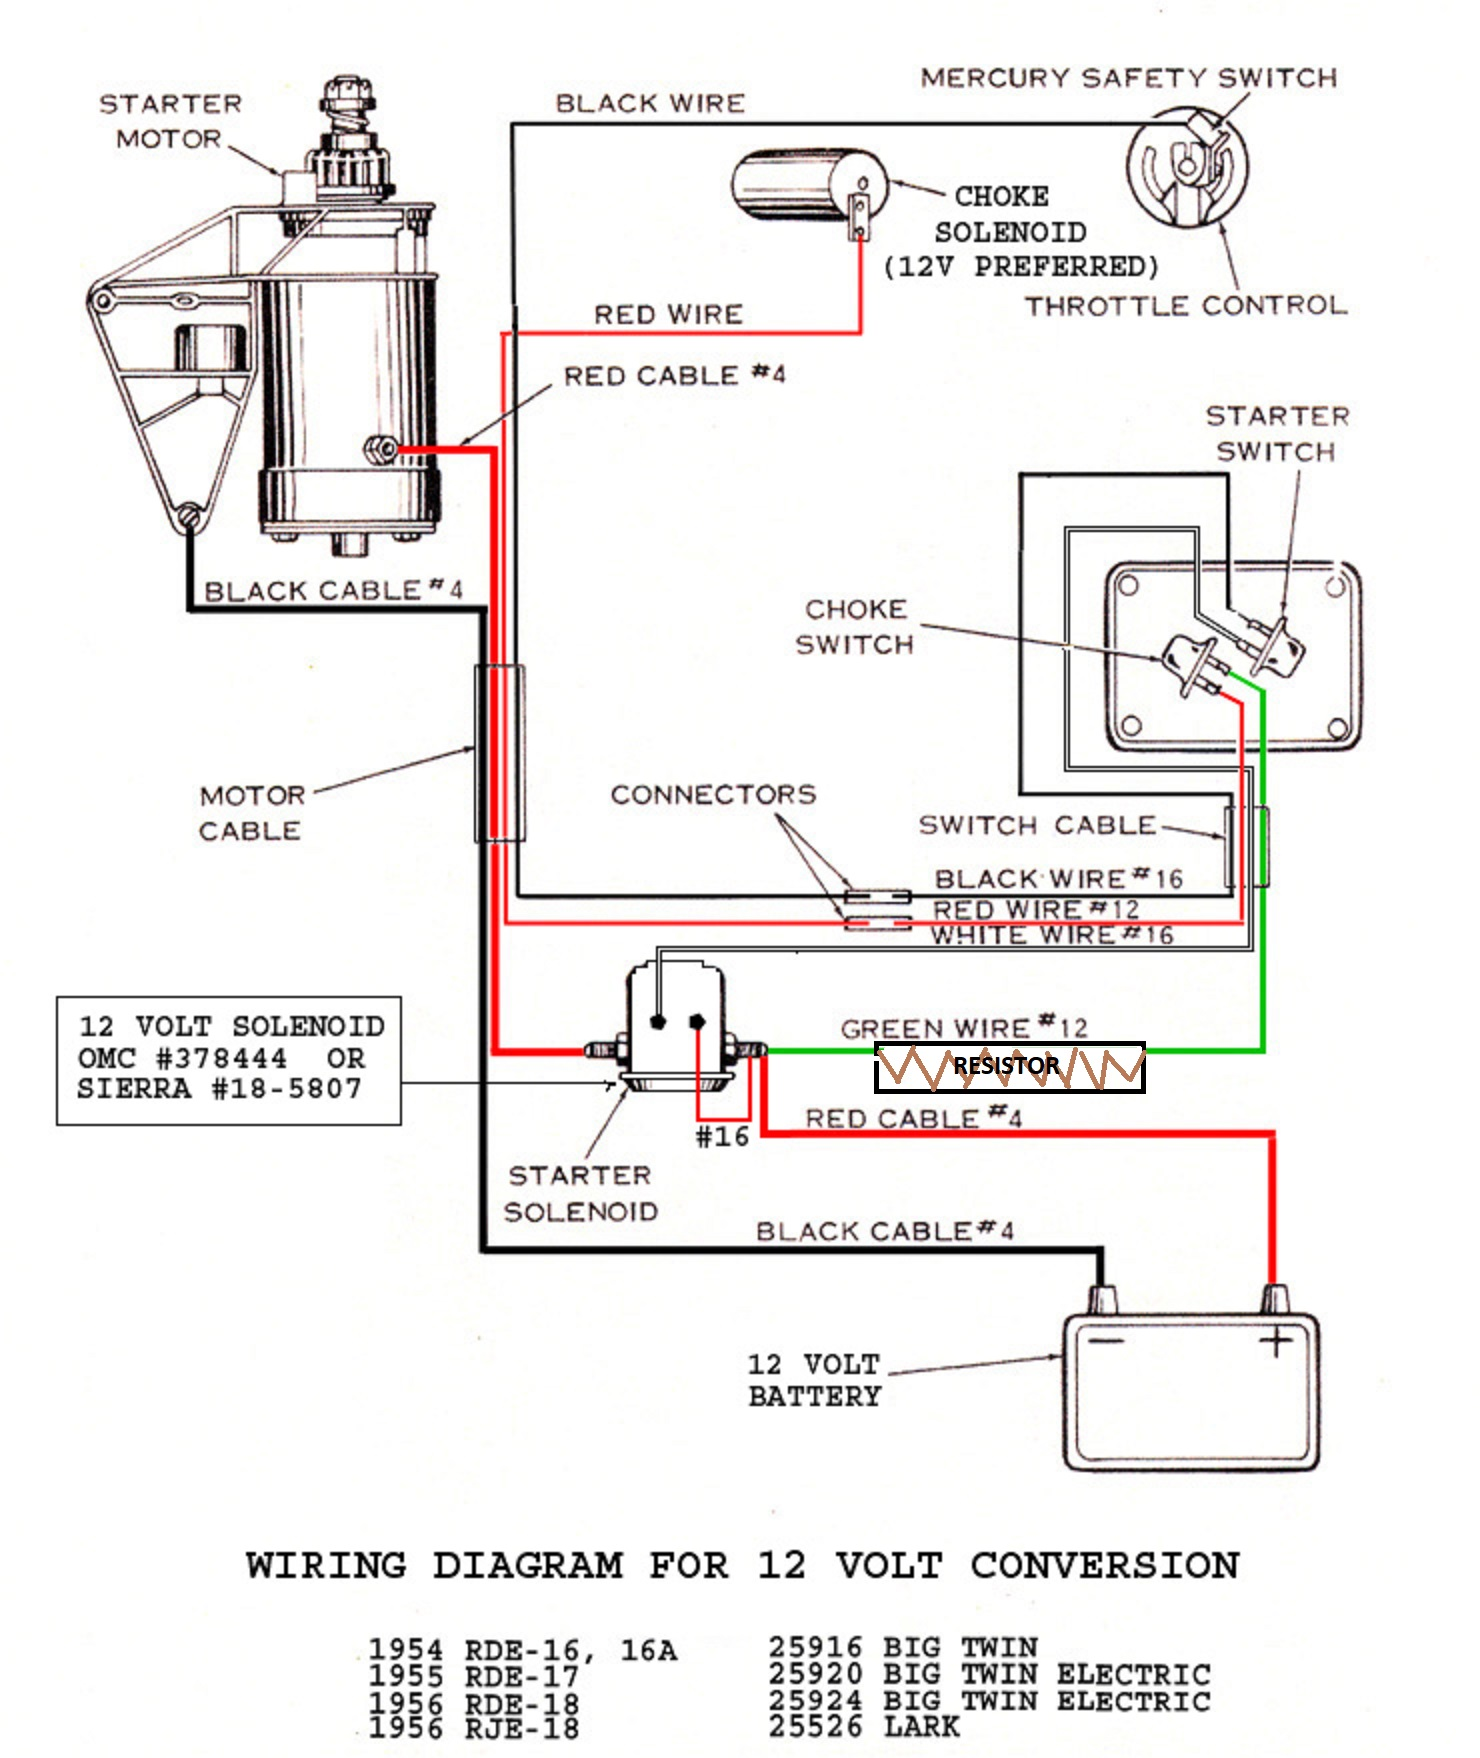 Re: Need suggestions on SMALL 12 volt starter solenoid for ... Acdelco Volt Solenoid Wiring Diagram on